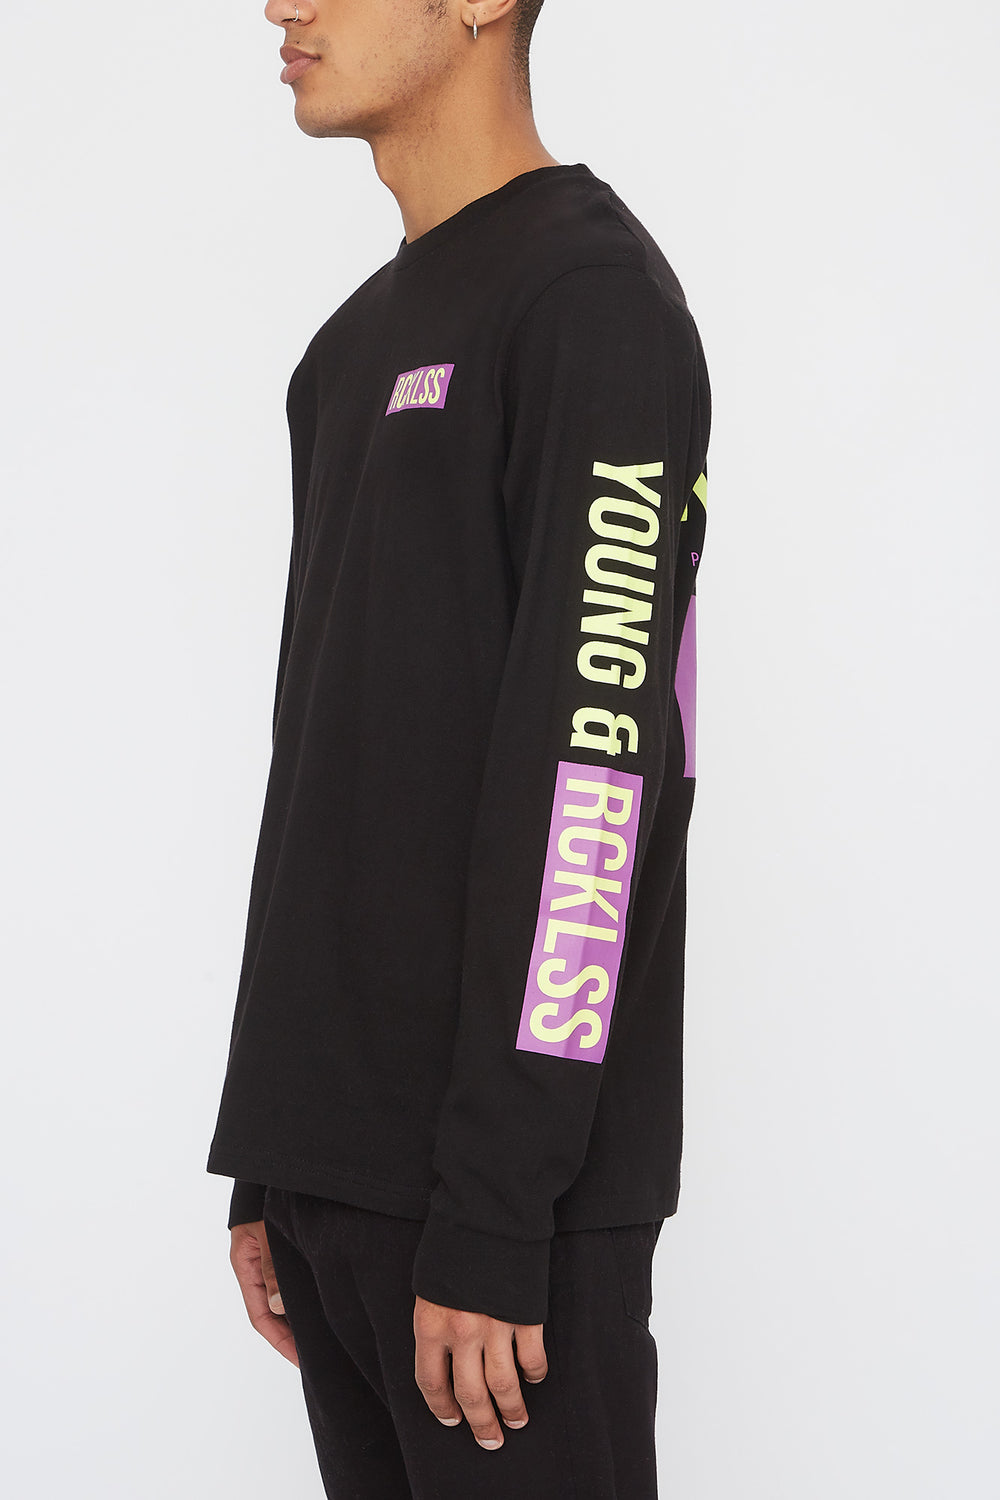 Young & Reckless Mens Neon Logos Long Sleeve Shirt Black